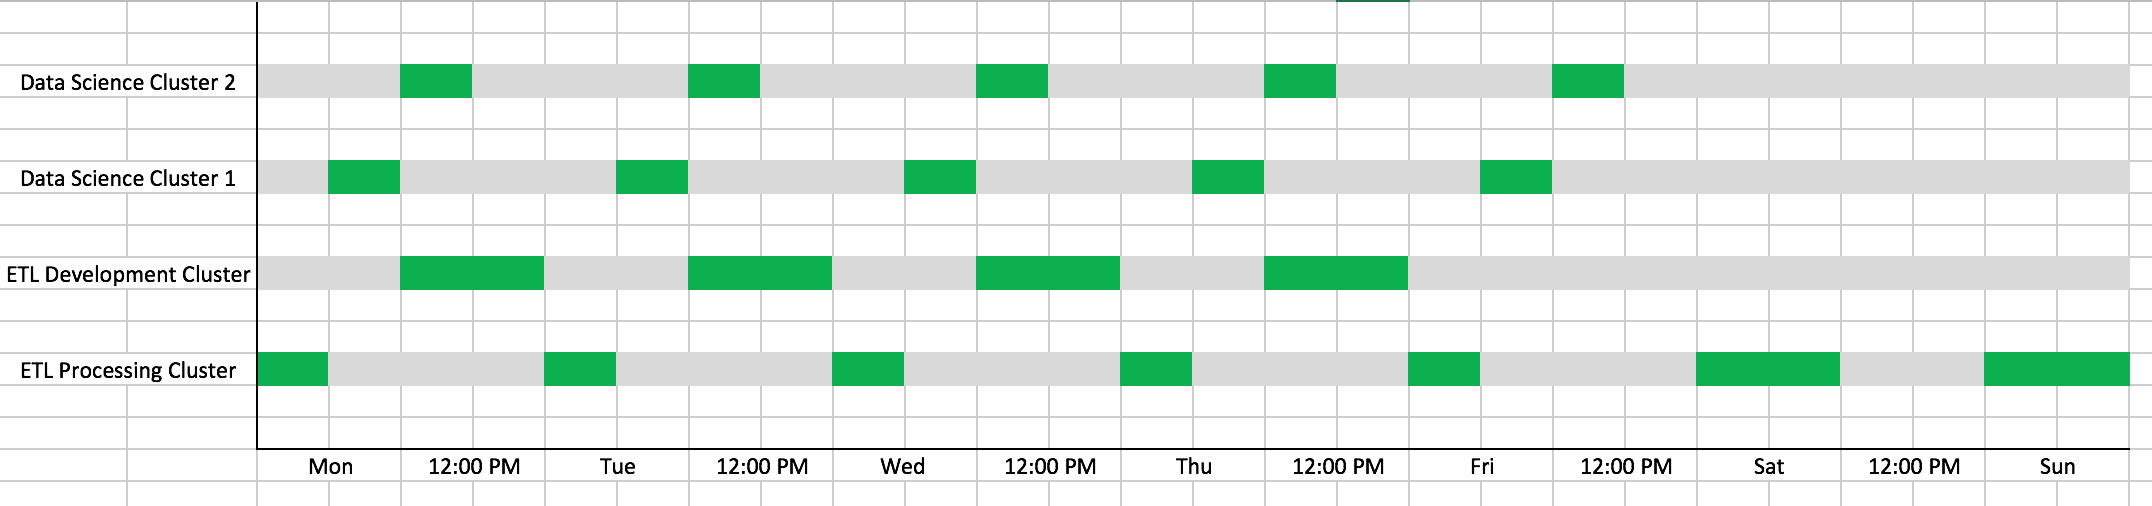 hdinsight_cluster_schedule.png